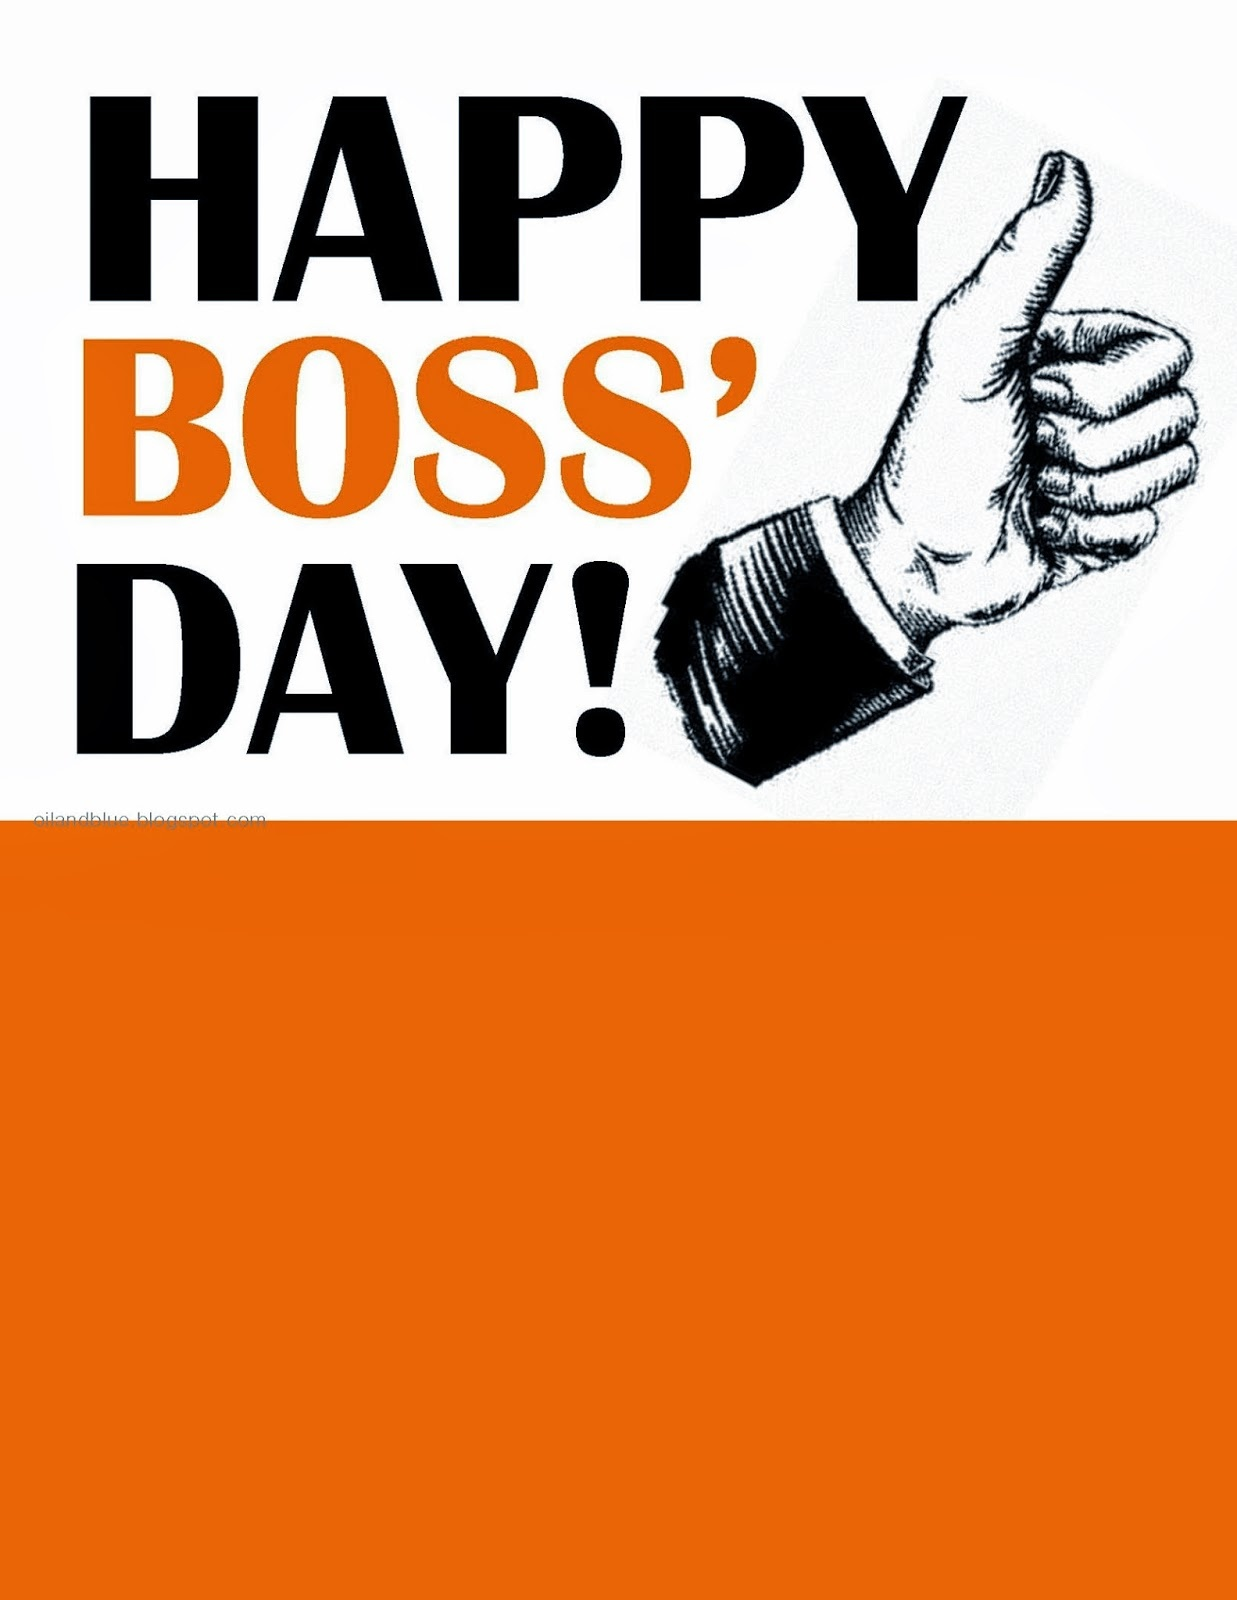 Free Boss Day Cliparts, Download Free Clip Art, Free Clip Art On - Free Printable Funny Boss Day Cards